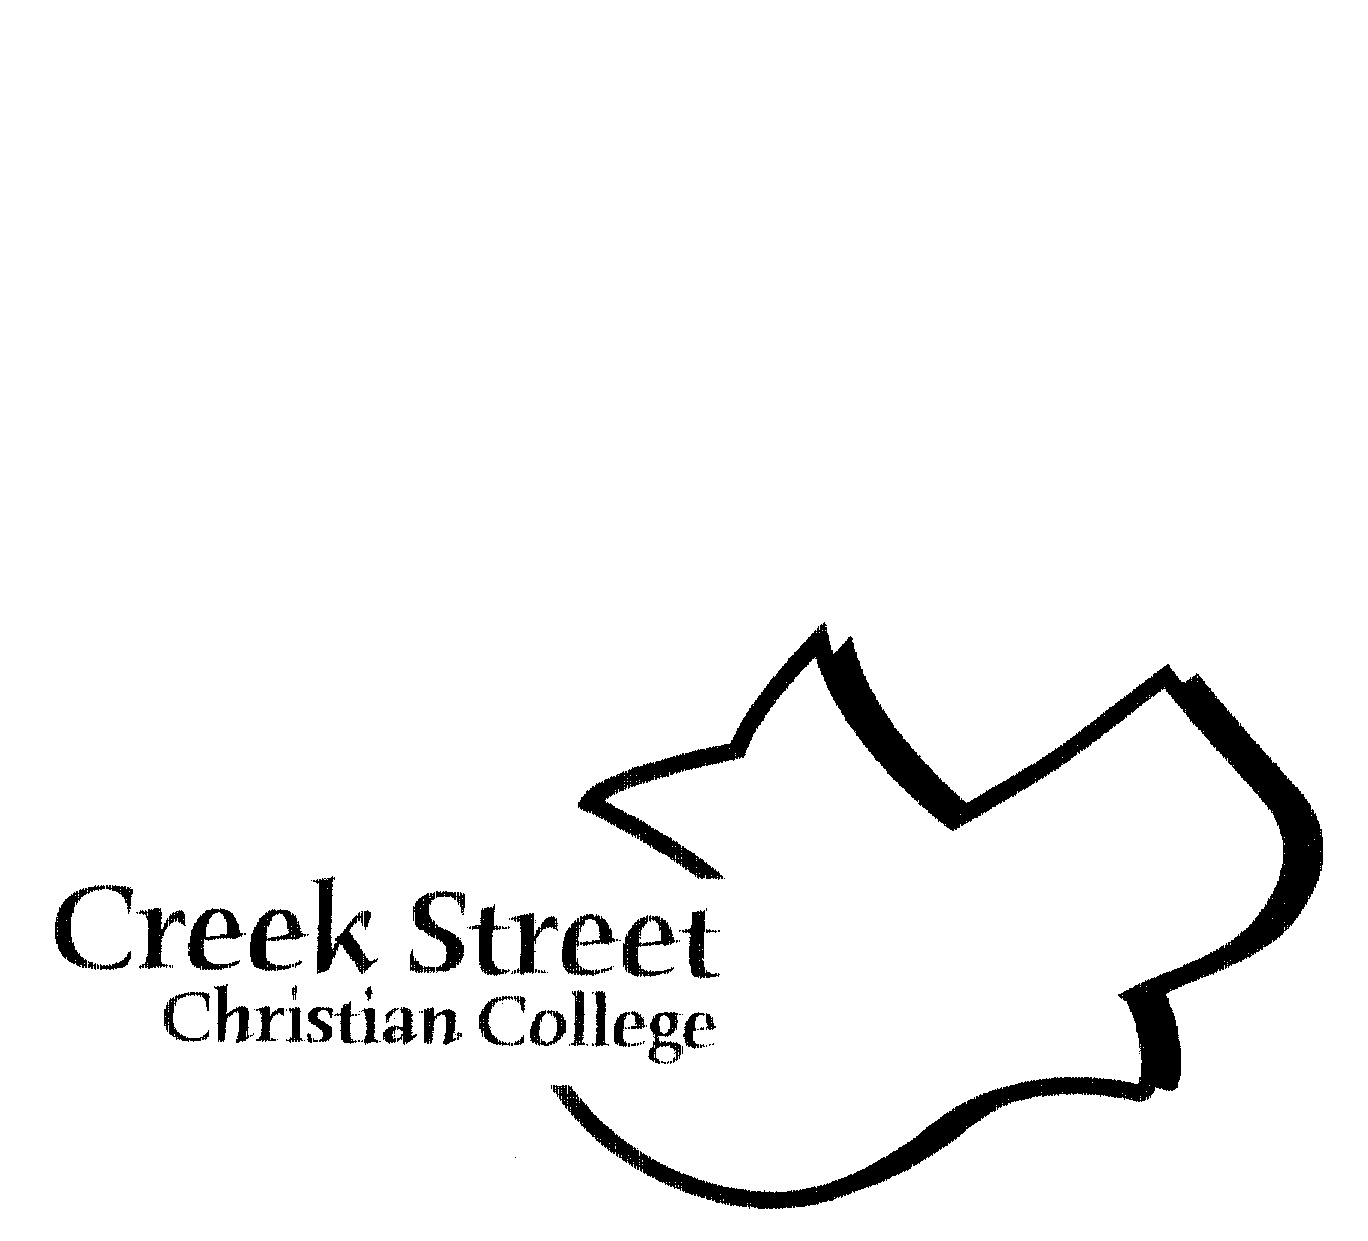 linn creek christian dating site Information and services for victims and survivors of domestic violence  warning: if you are afraid your computer or phone usage might be monitored, please use a safer computer, call your local hotline, and/or call the national domestic violence hotline at 1-800-799-safe (7233.